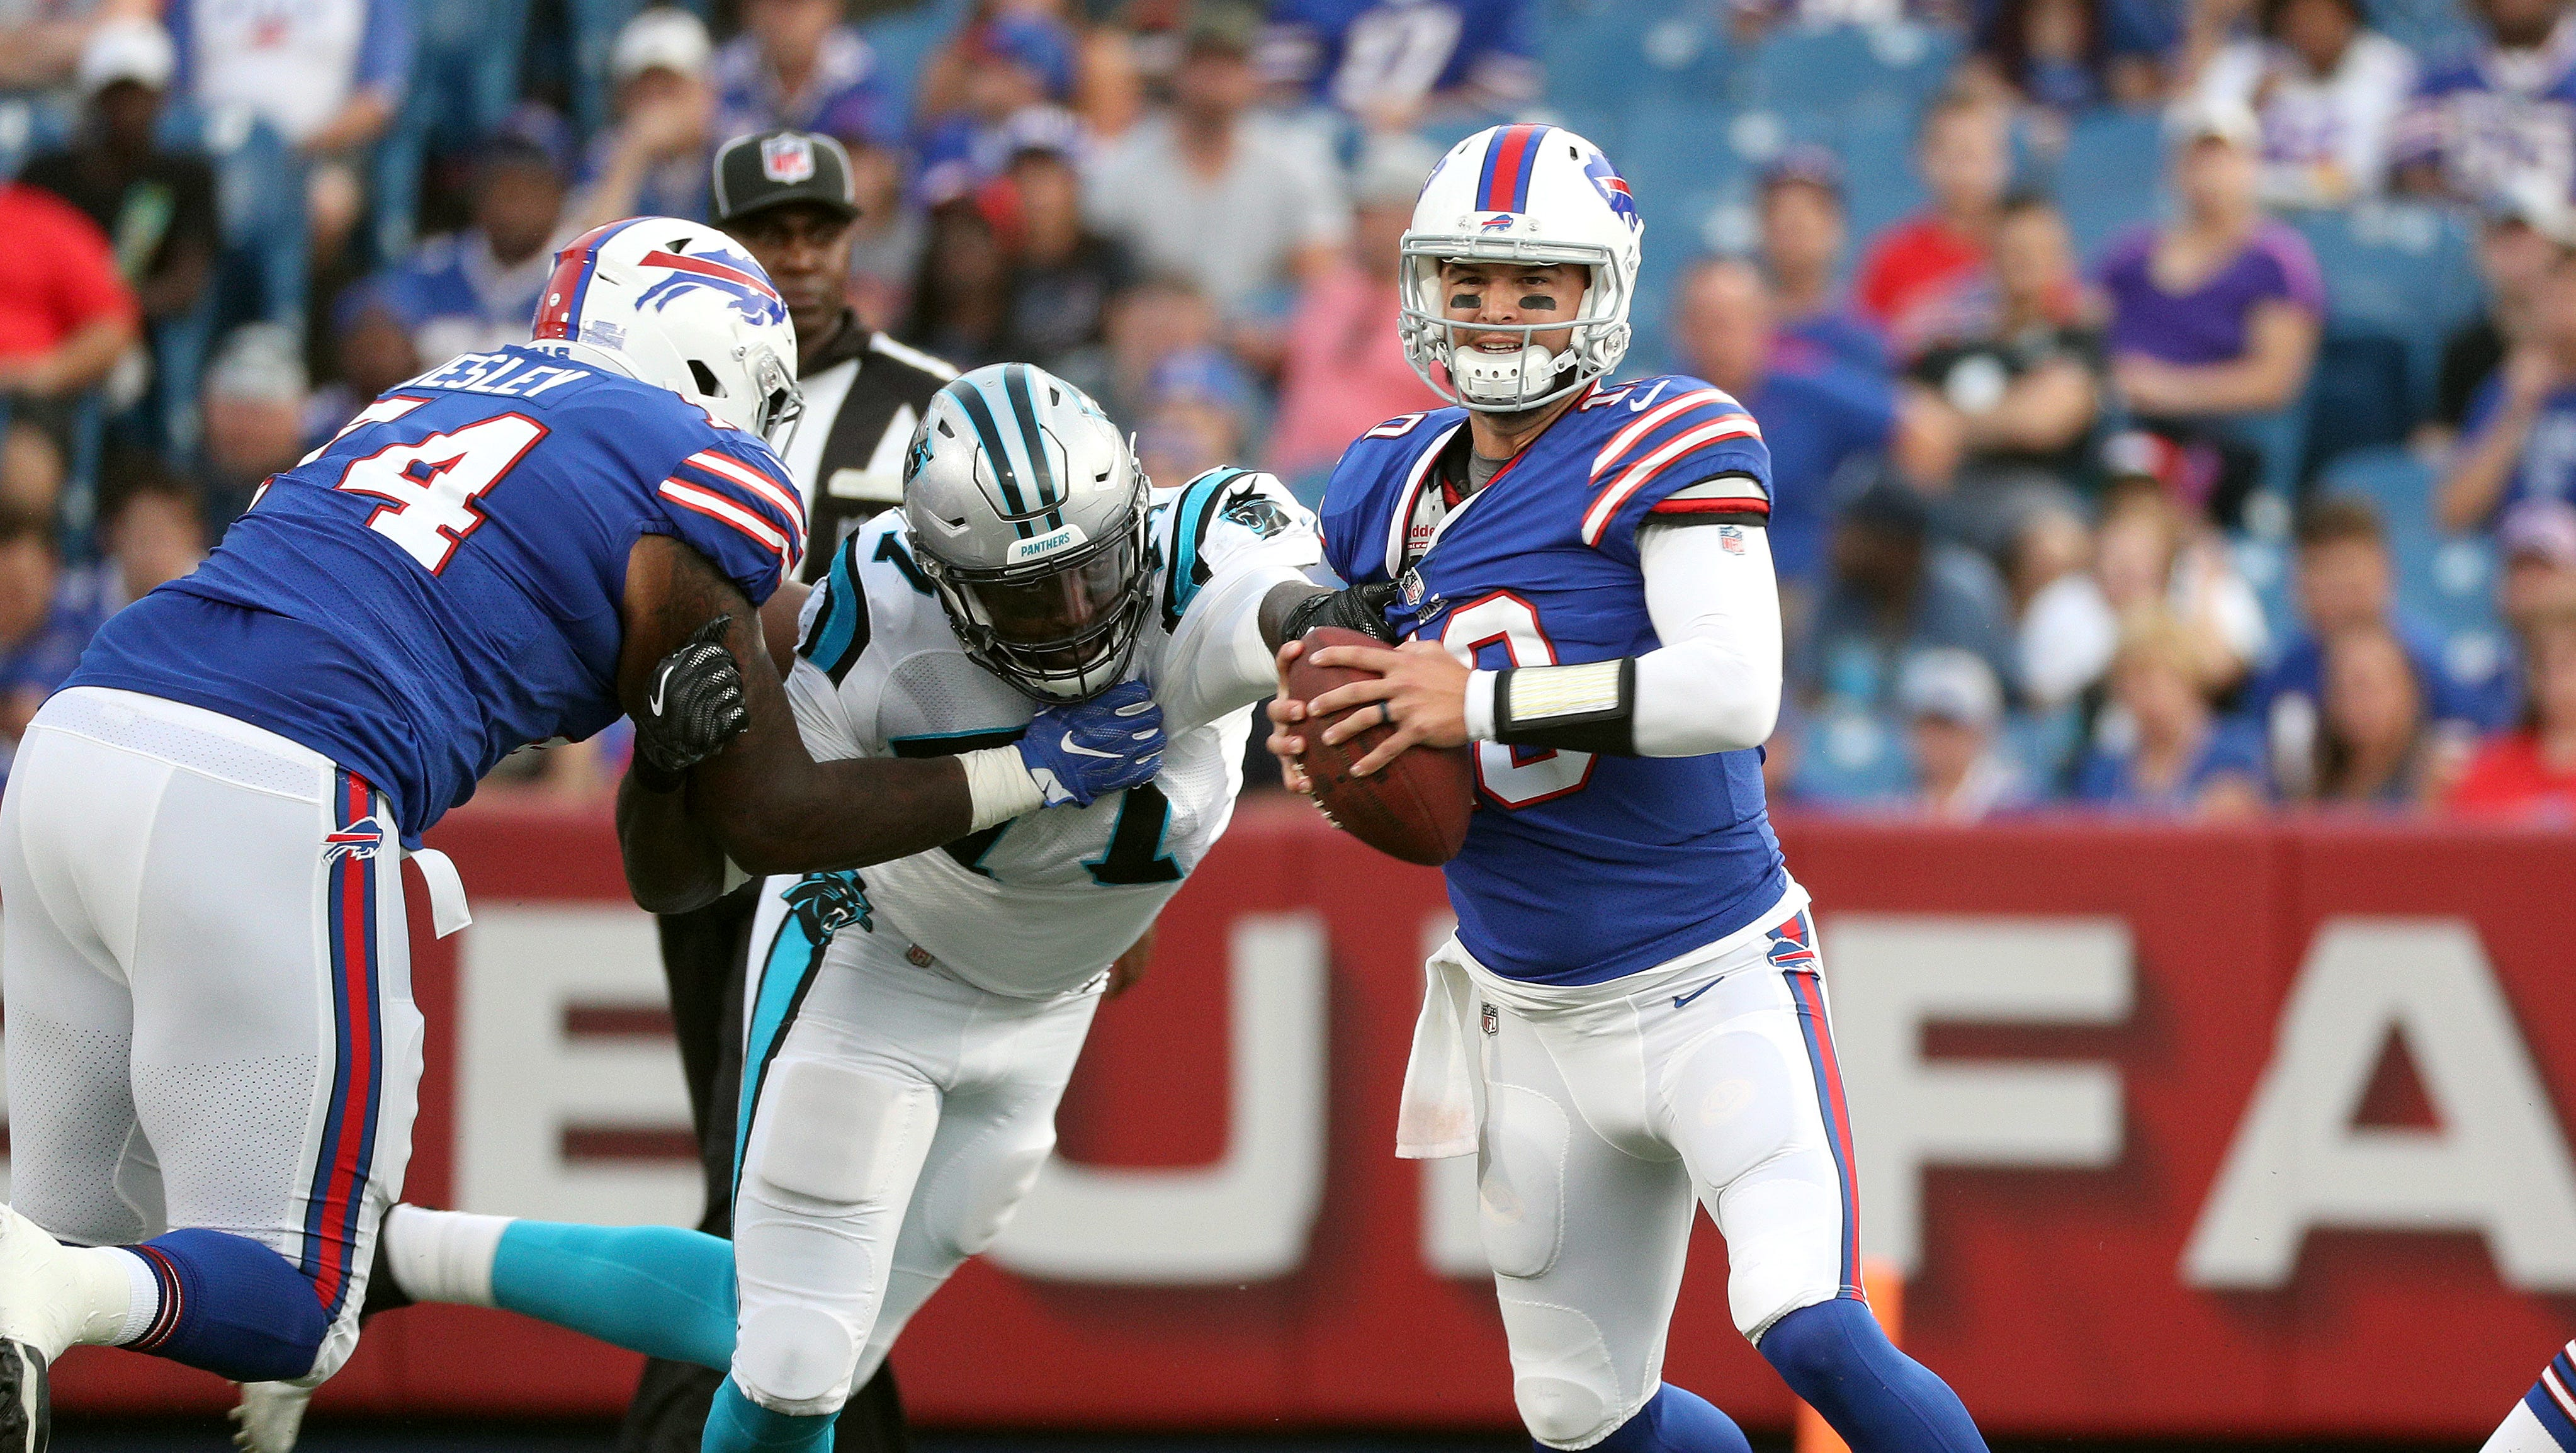 Roth: Peterman, McCarron and Allen all deliver for Buffalo Bills in preseason opener